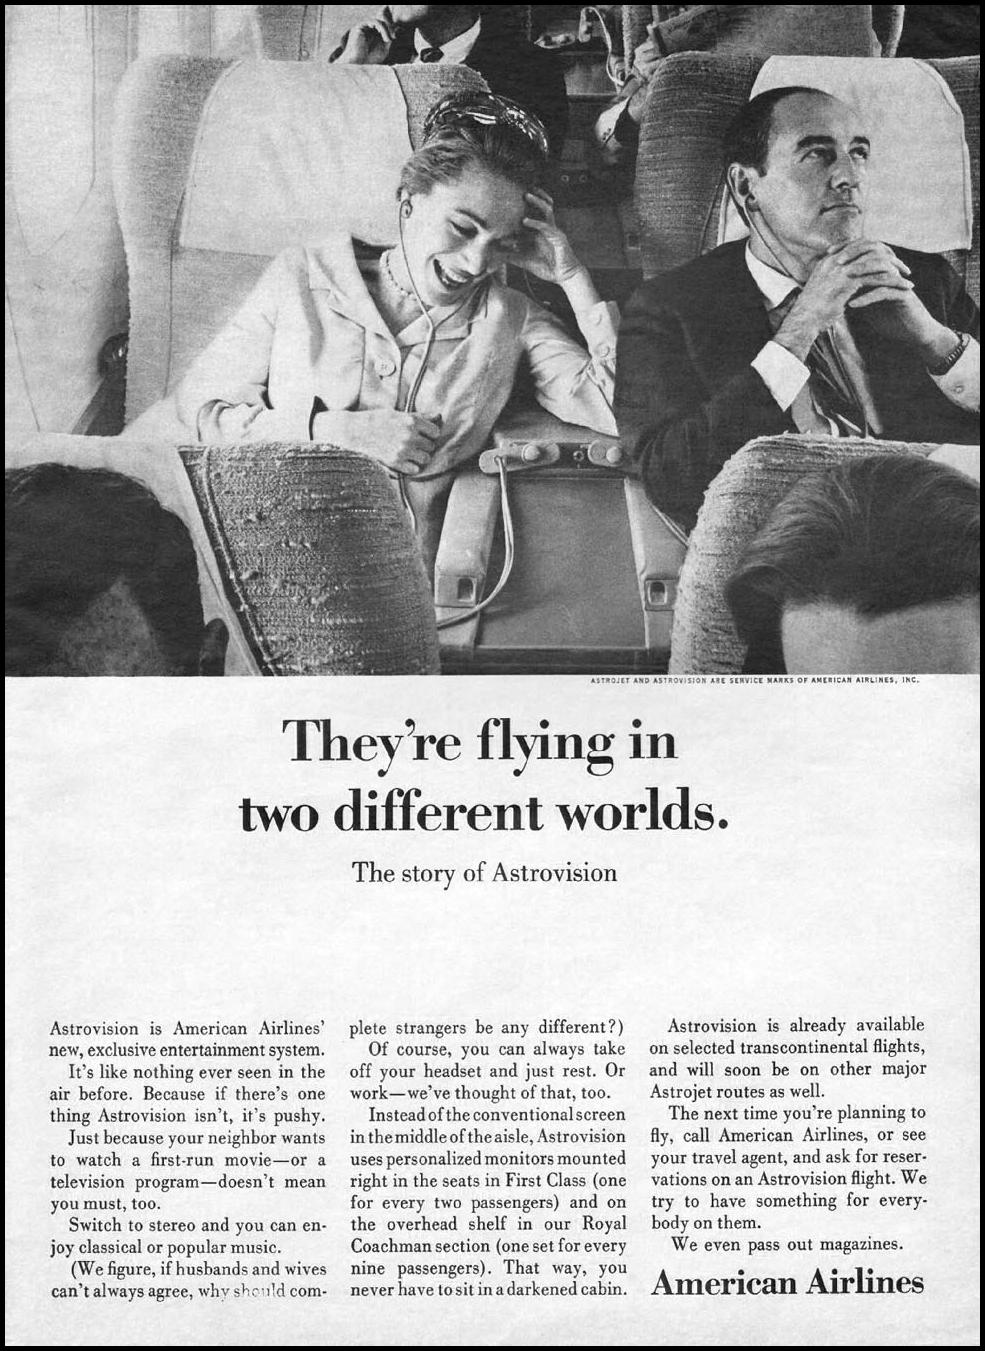 ASTROVISION ENTERTAINMENT SYSTEM NEWSWEEK 10/12/1964